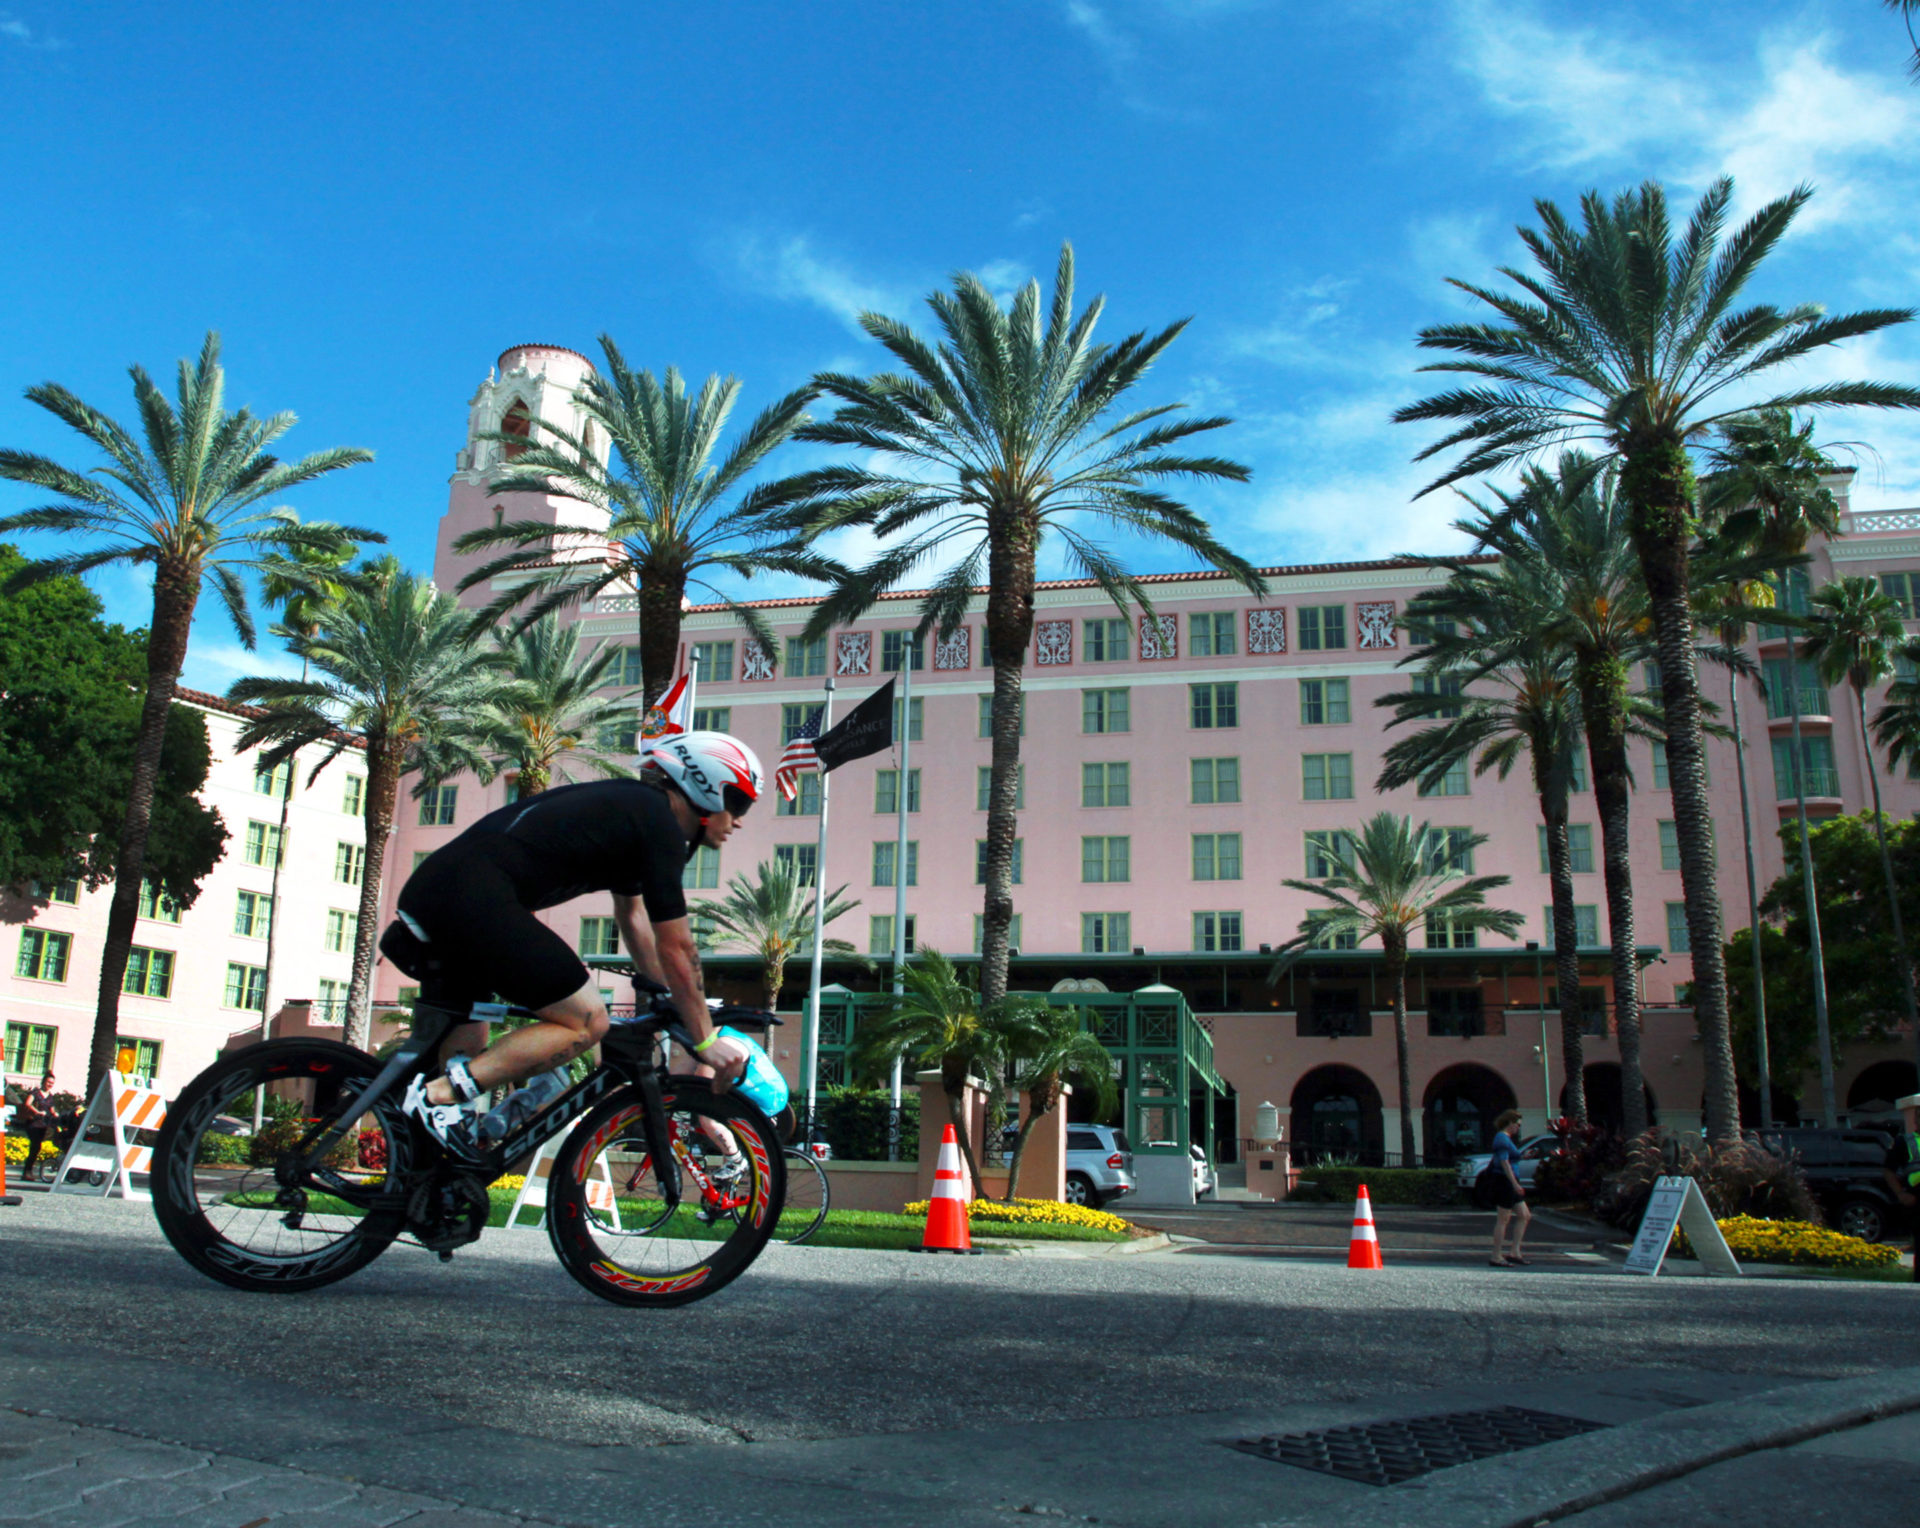 St. Petersburg, Fl.  4.30.2017. World Champions, Olympians, and a well-rounded roster of professional athletes from across the world comprise the field for the 34th Annual St. Anthony's Triathlon that returns to St. Petersburg on Sunday, April 30th 2017.